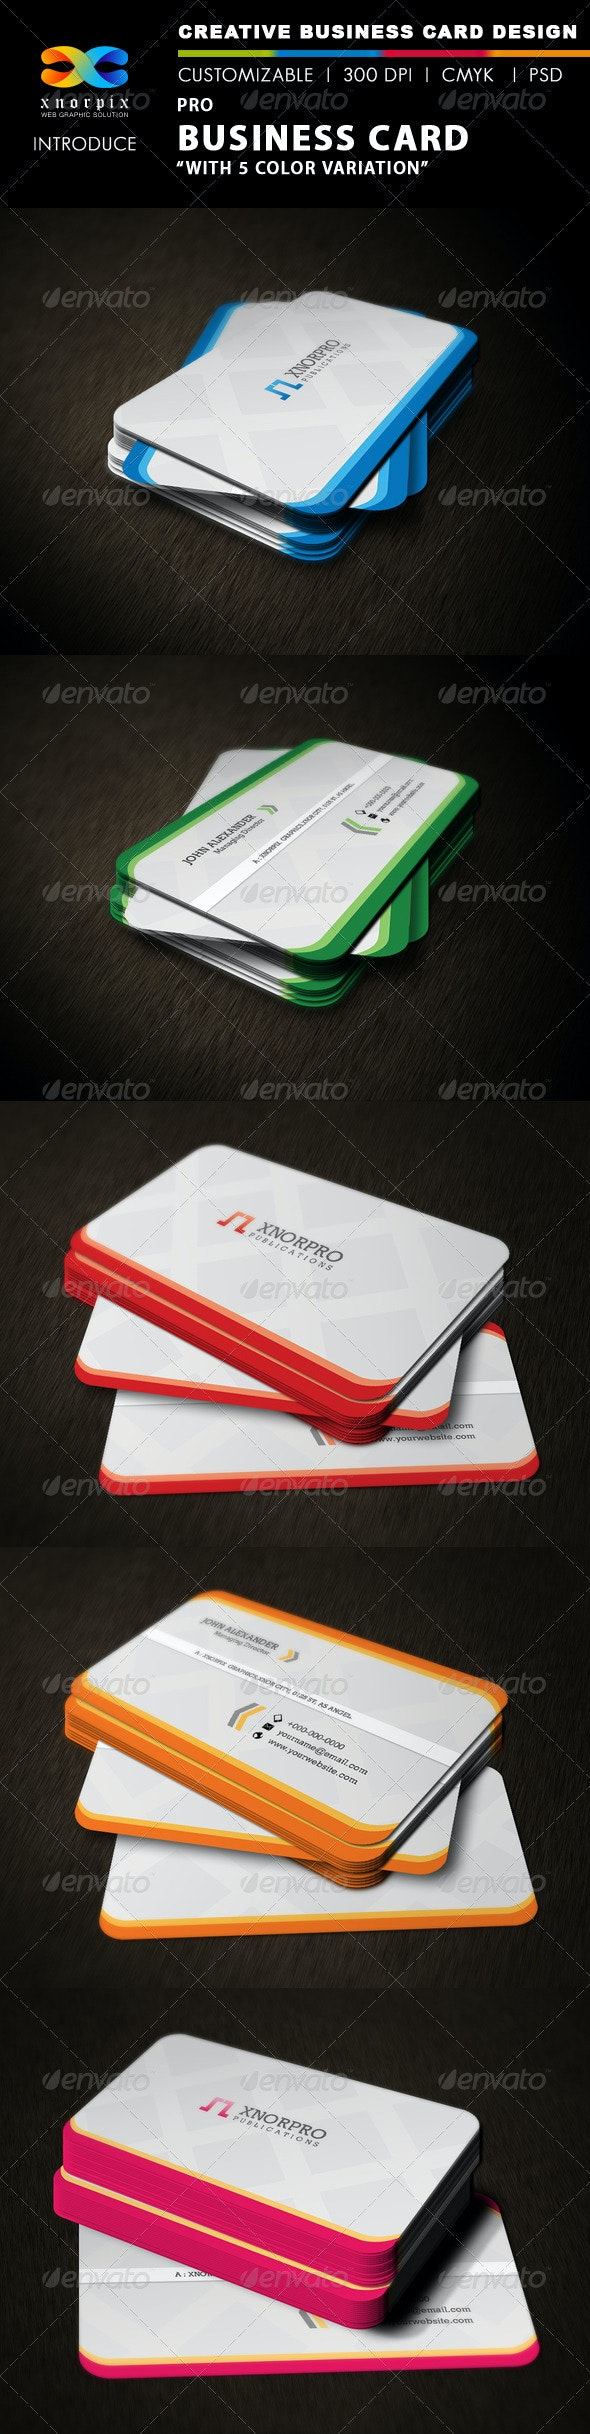 Pro Business Card - Corporate Business Cards